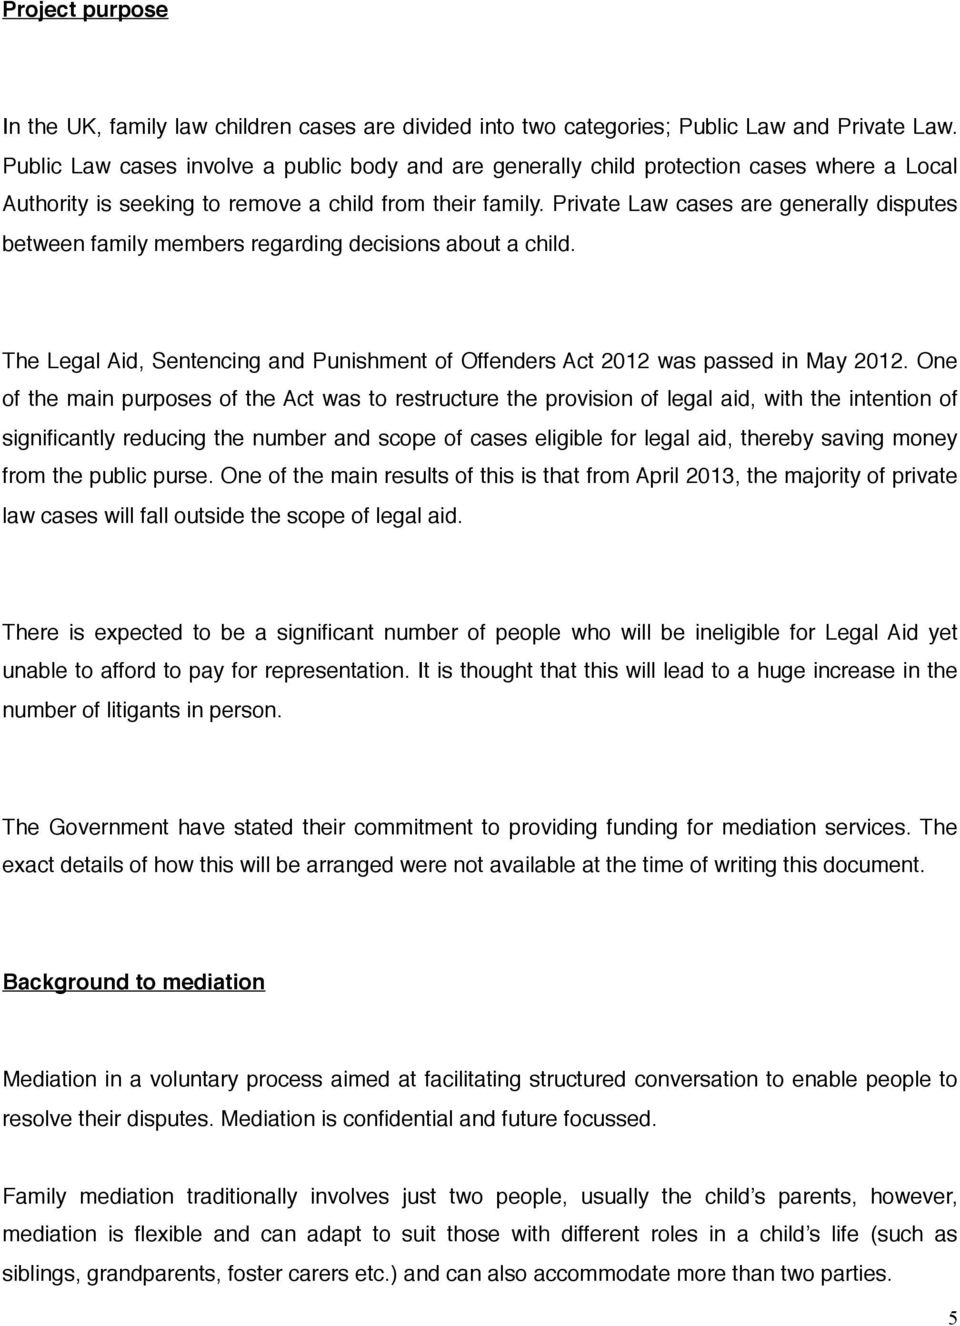 Private Law cases are generally disputes between family members regarding decisions about a child. The Legal Aid, Sentencing and Punishment of Offenders Act 2012 was passed in May 2012.